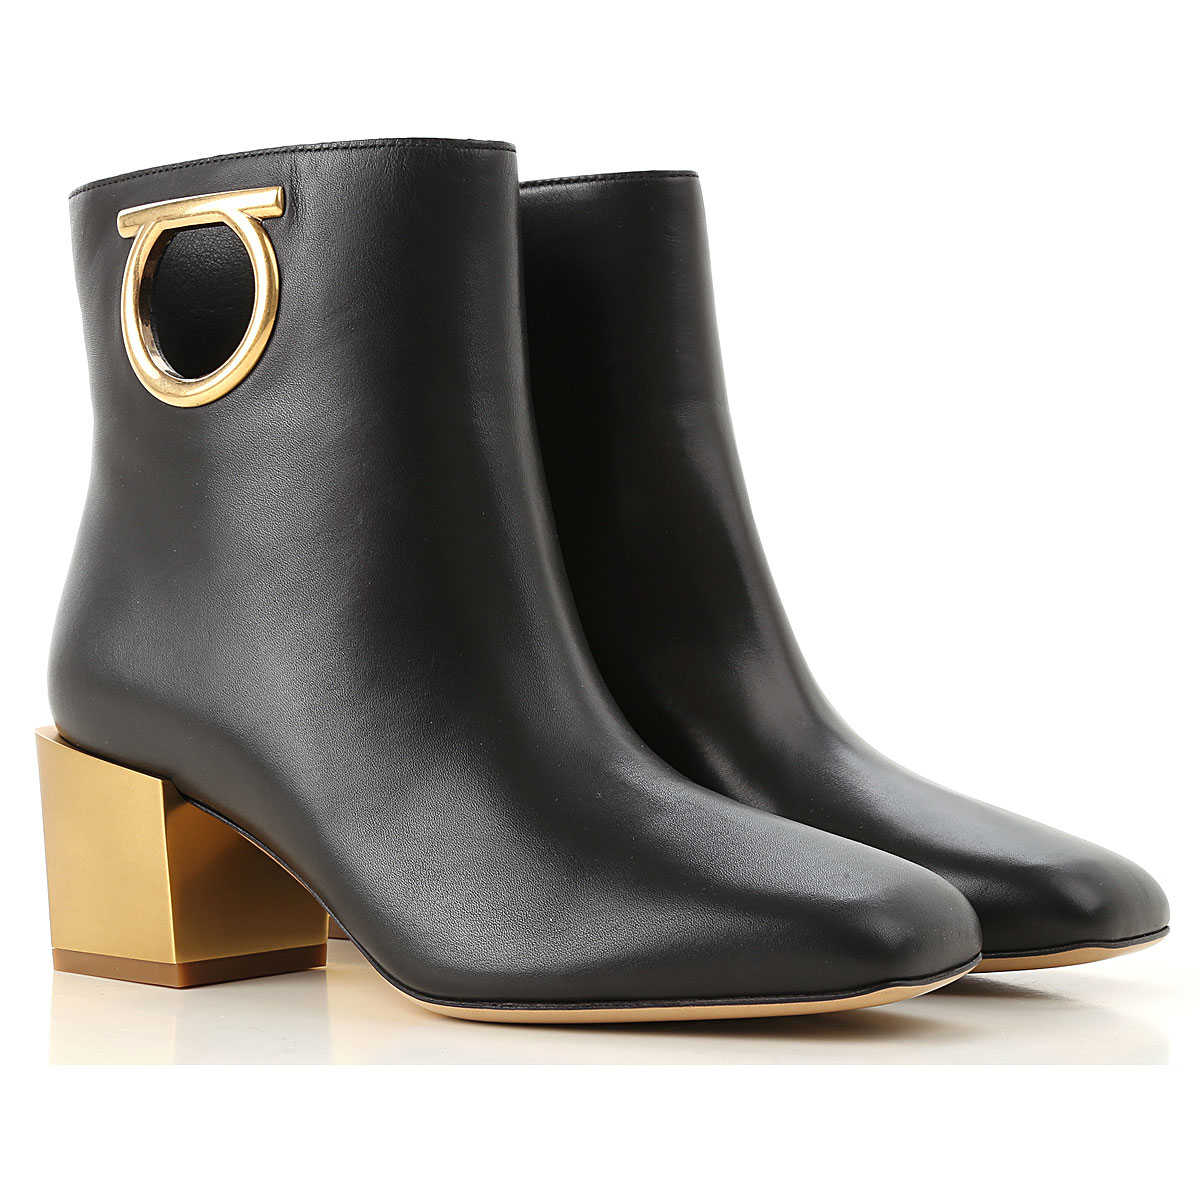 Salvatore Ferragamo Boots for Women